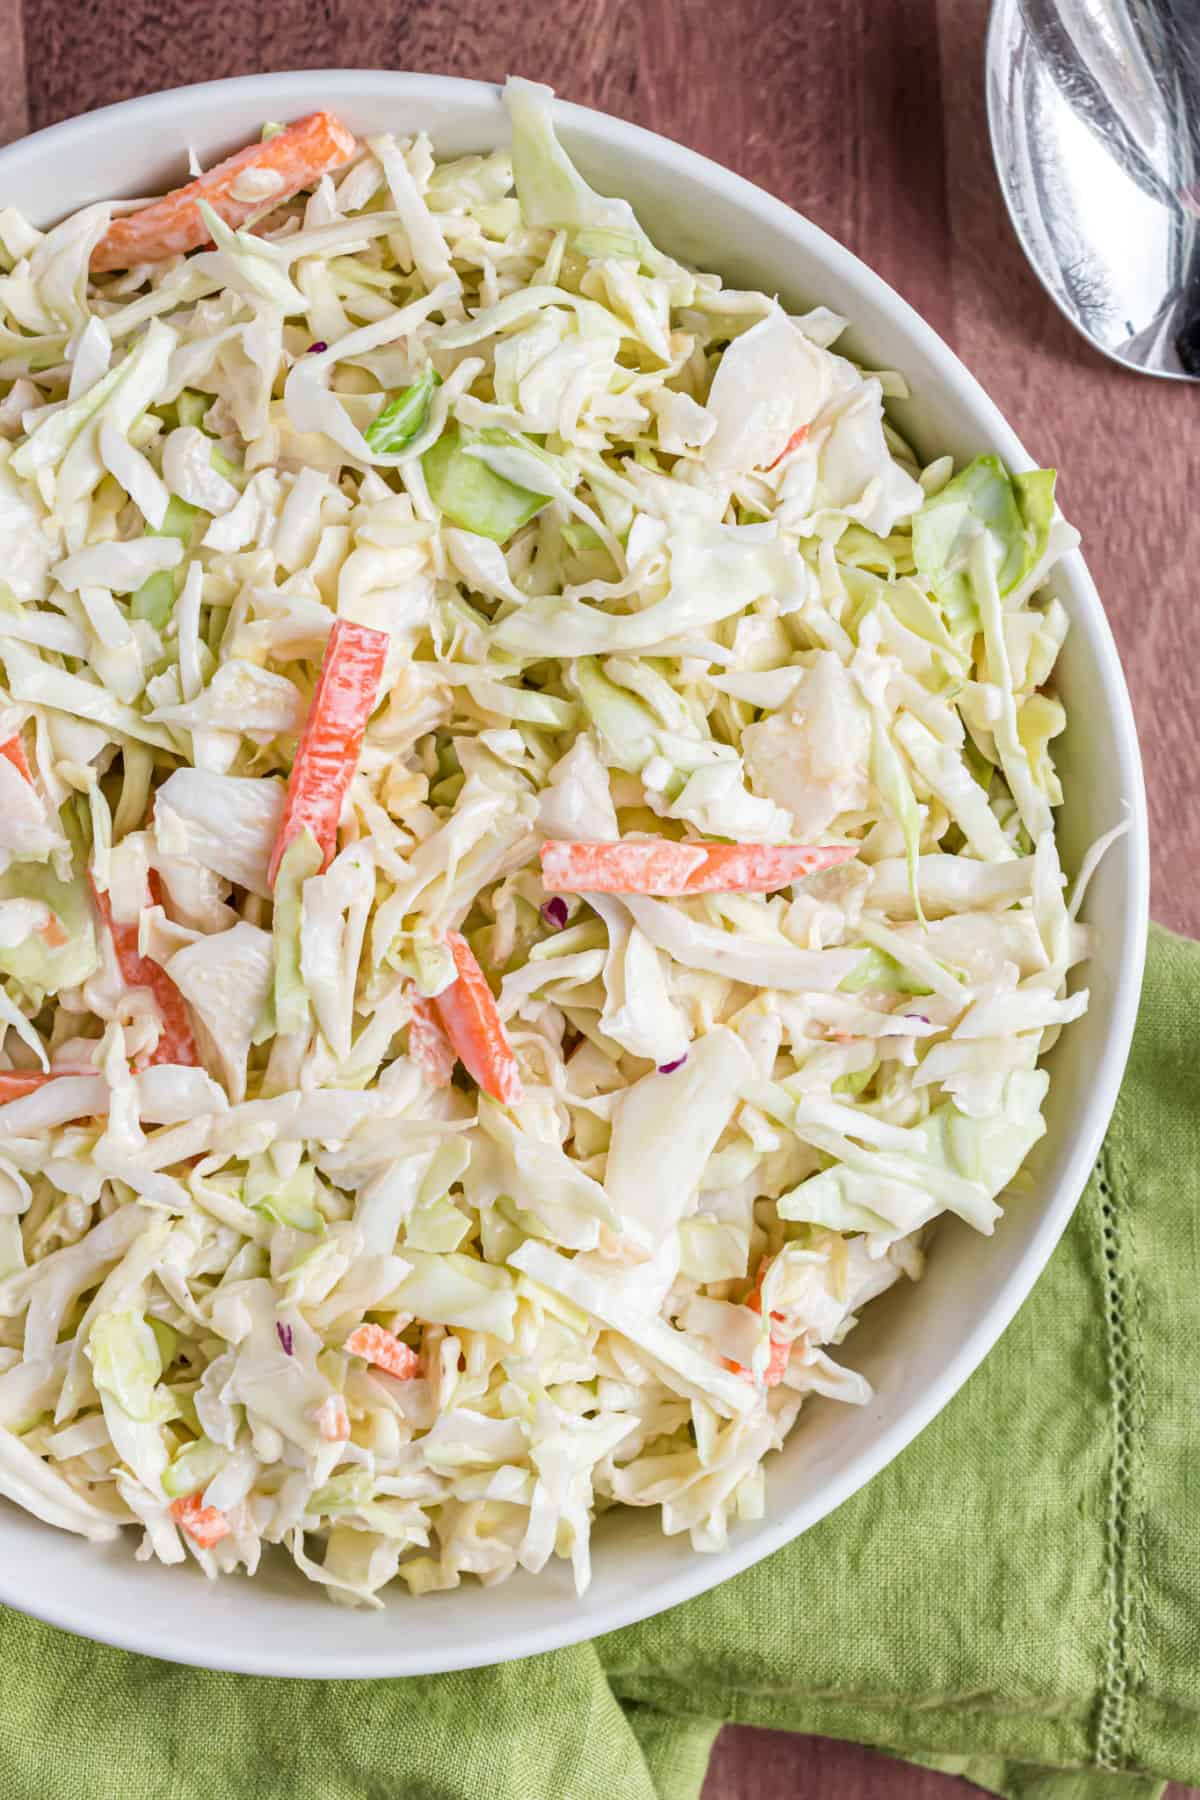 Coleslaw in a white bowl for serving.